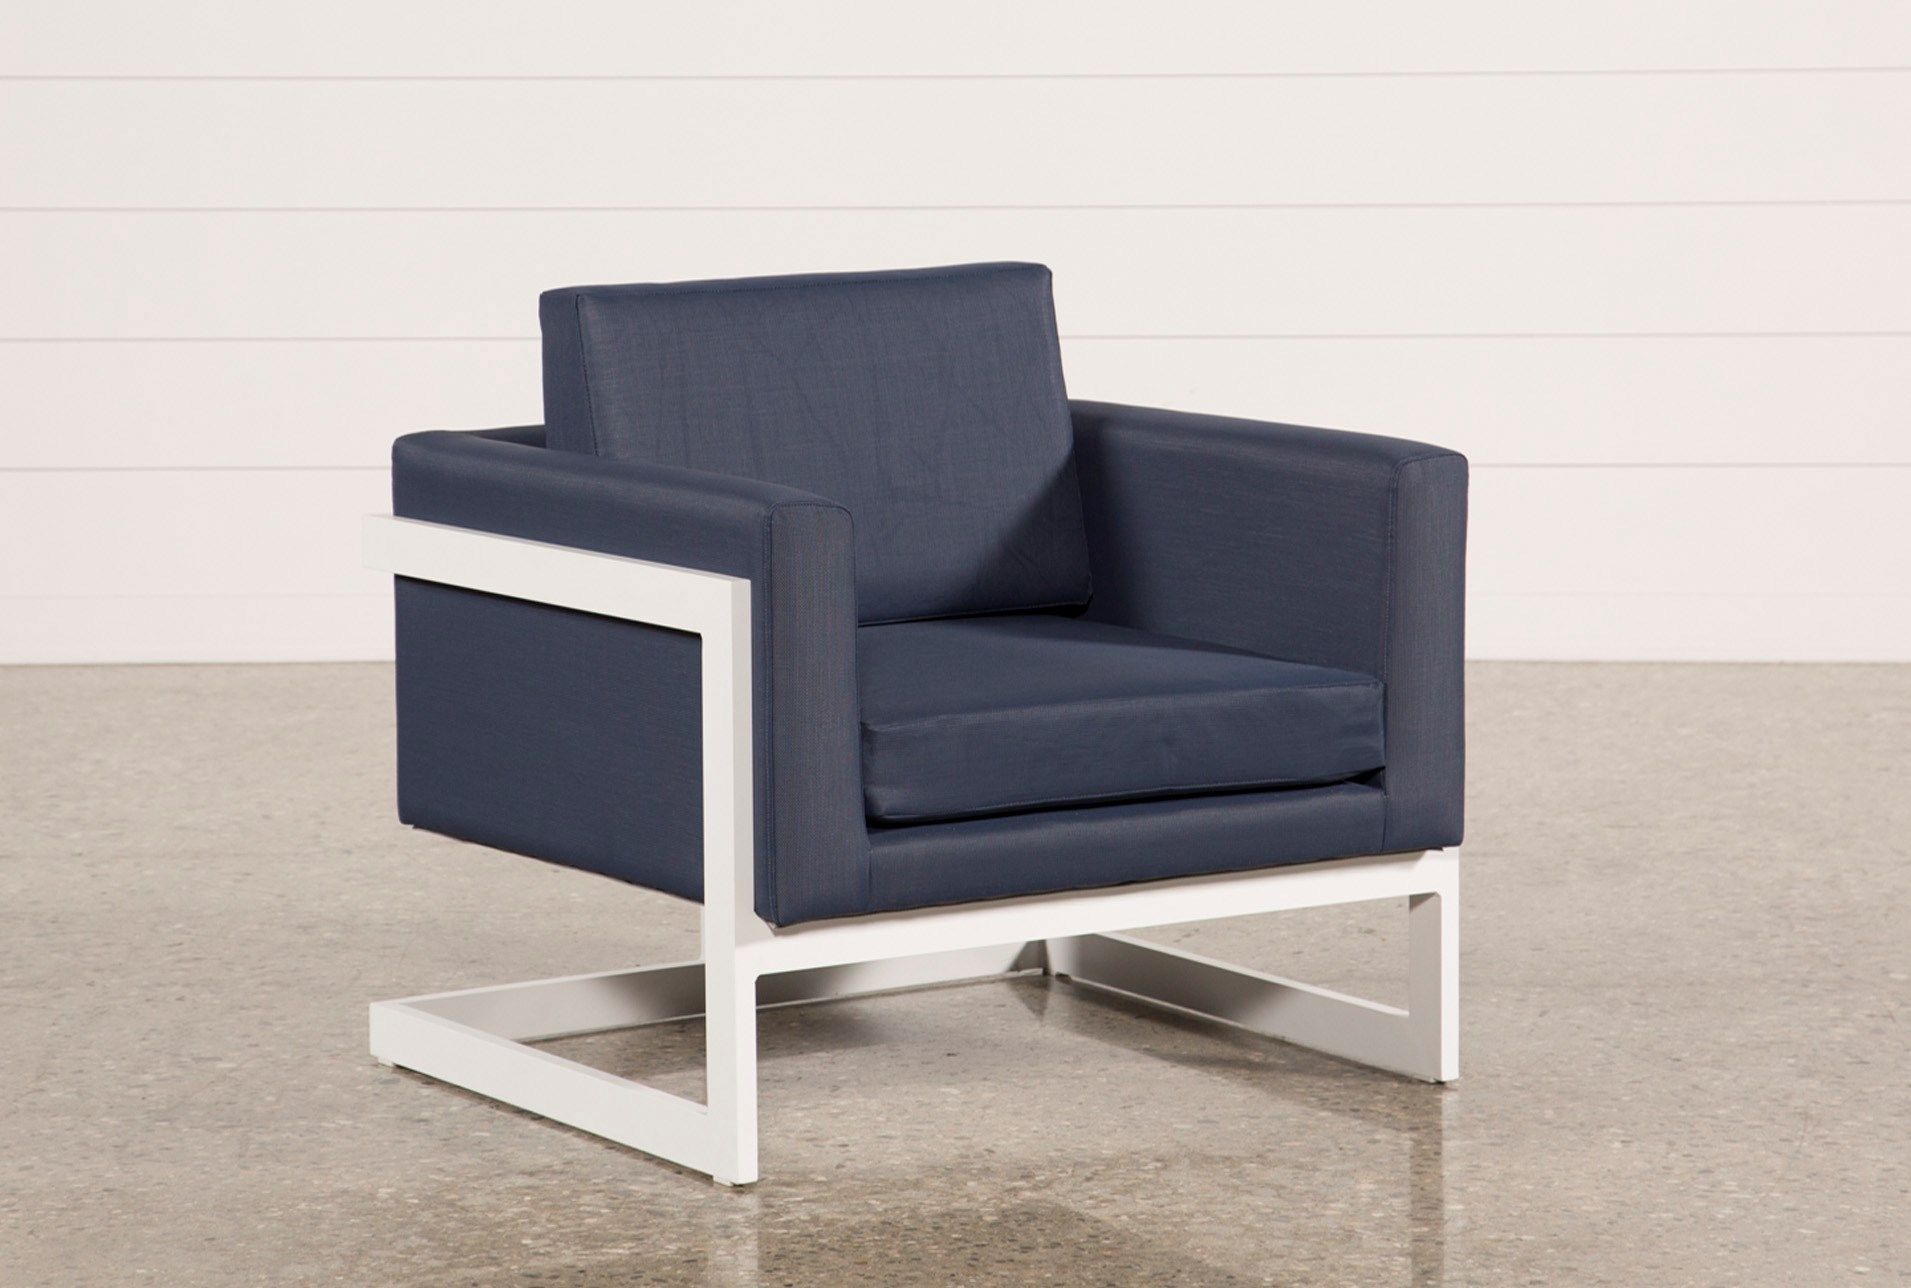 Outdoor Biscayne Ii Navy Lounge Chair | Patio | Pinterest | Patios With Outdoor Koro Swivel Chairs (View 2 of 20)